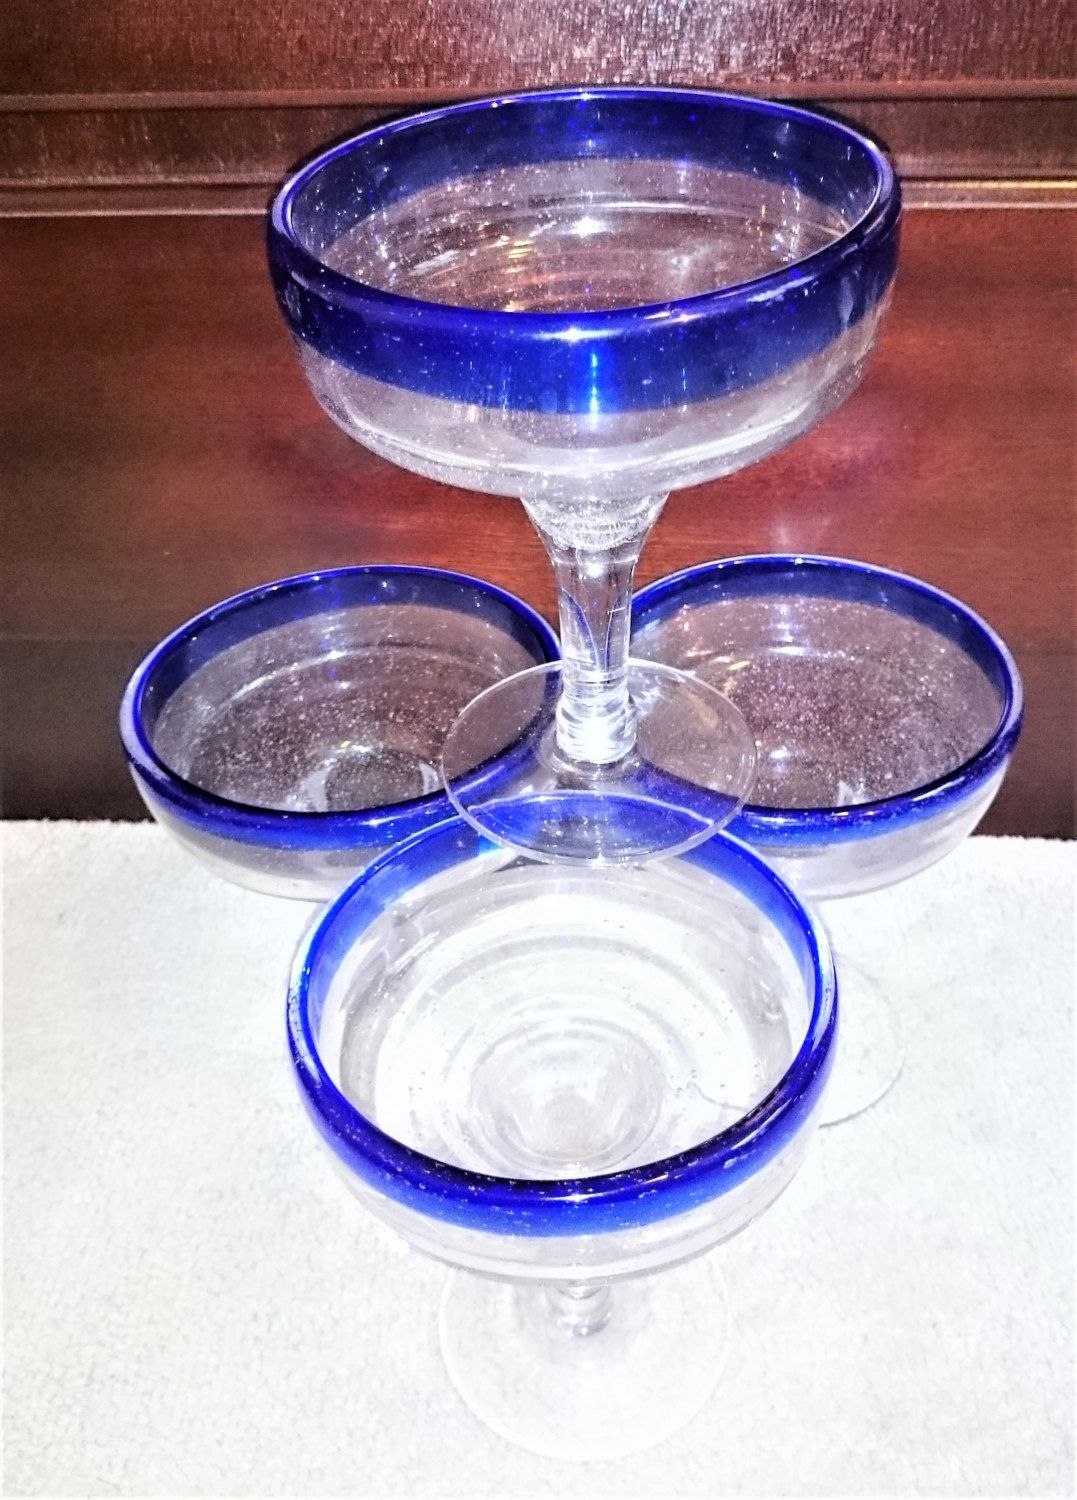 Vintage Blue Rimmed Mexican Margarita Glasses, Cobalt Blue Margarita Glasses, Hand Blown Bubble Blue Rim Margarita Glasses - Set of 4 by Penelainbricandbrac on Etsy